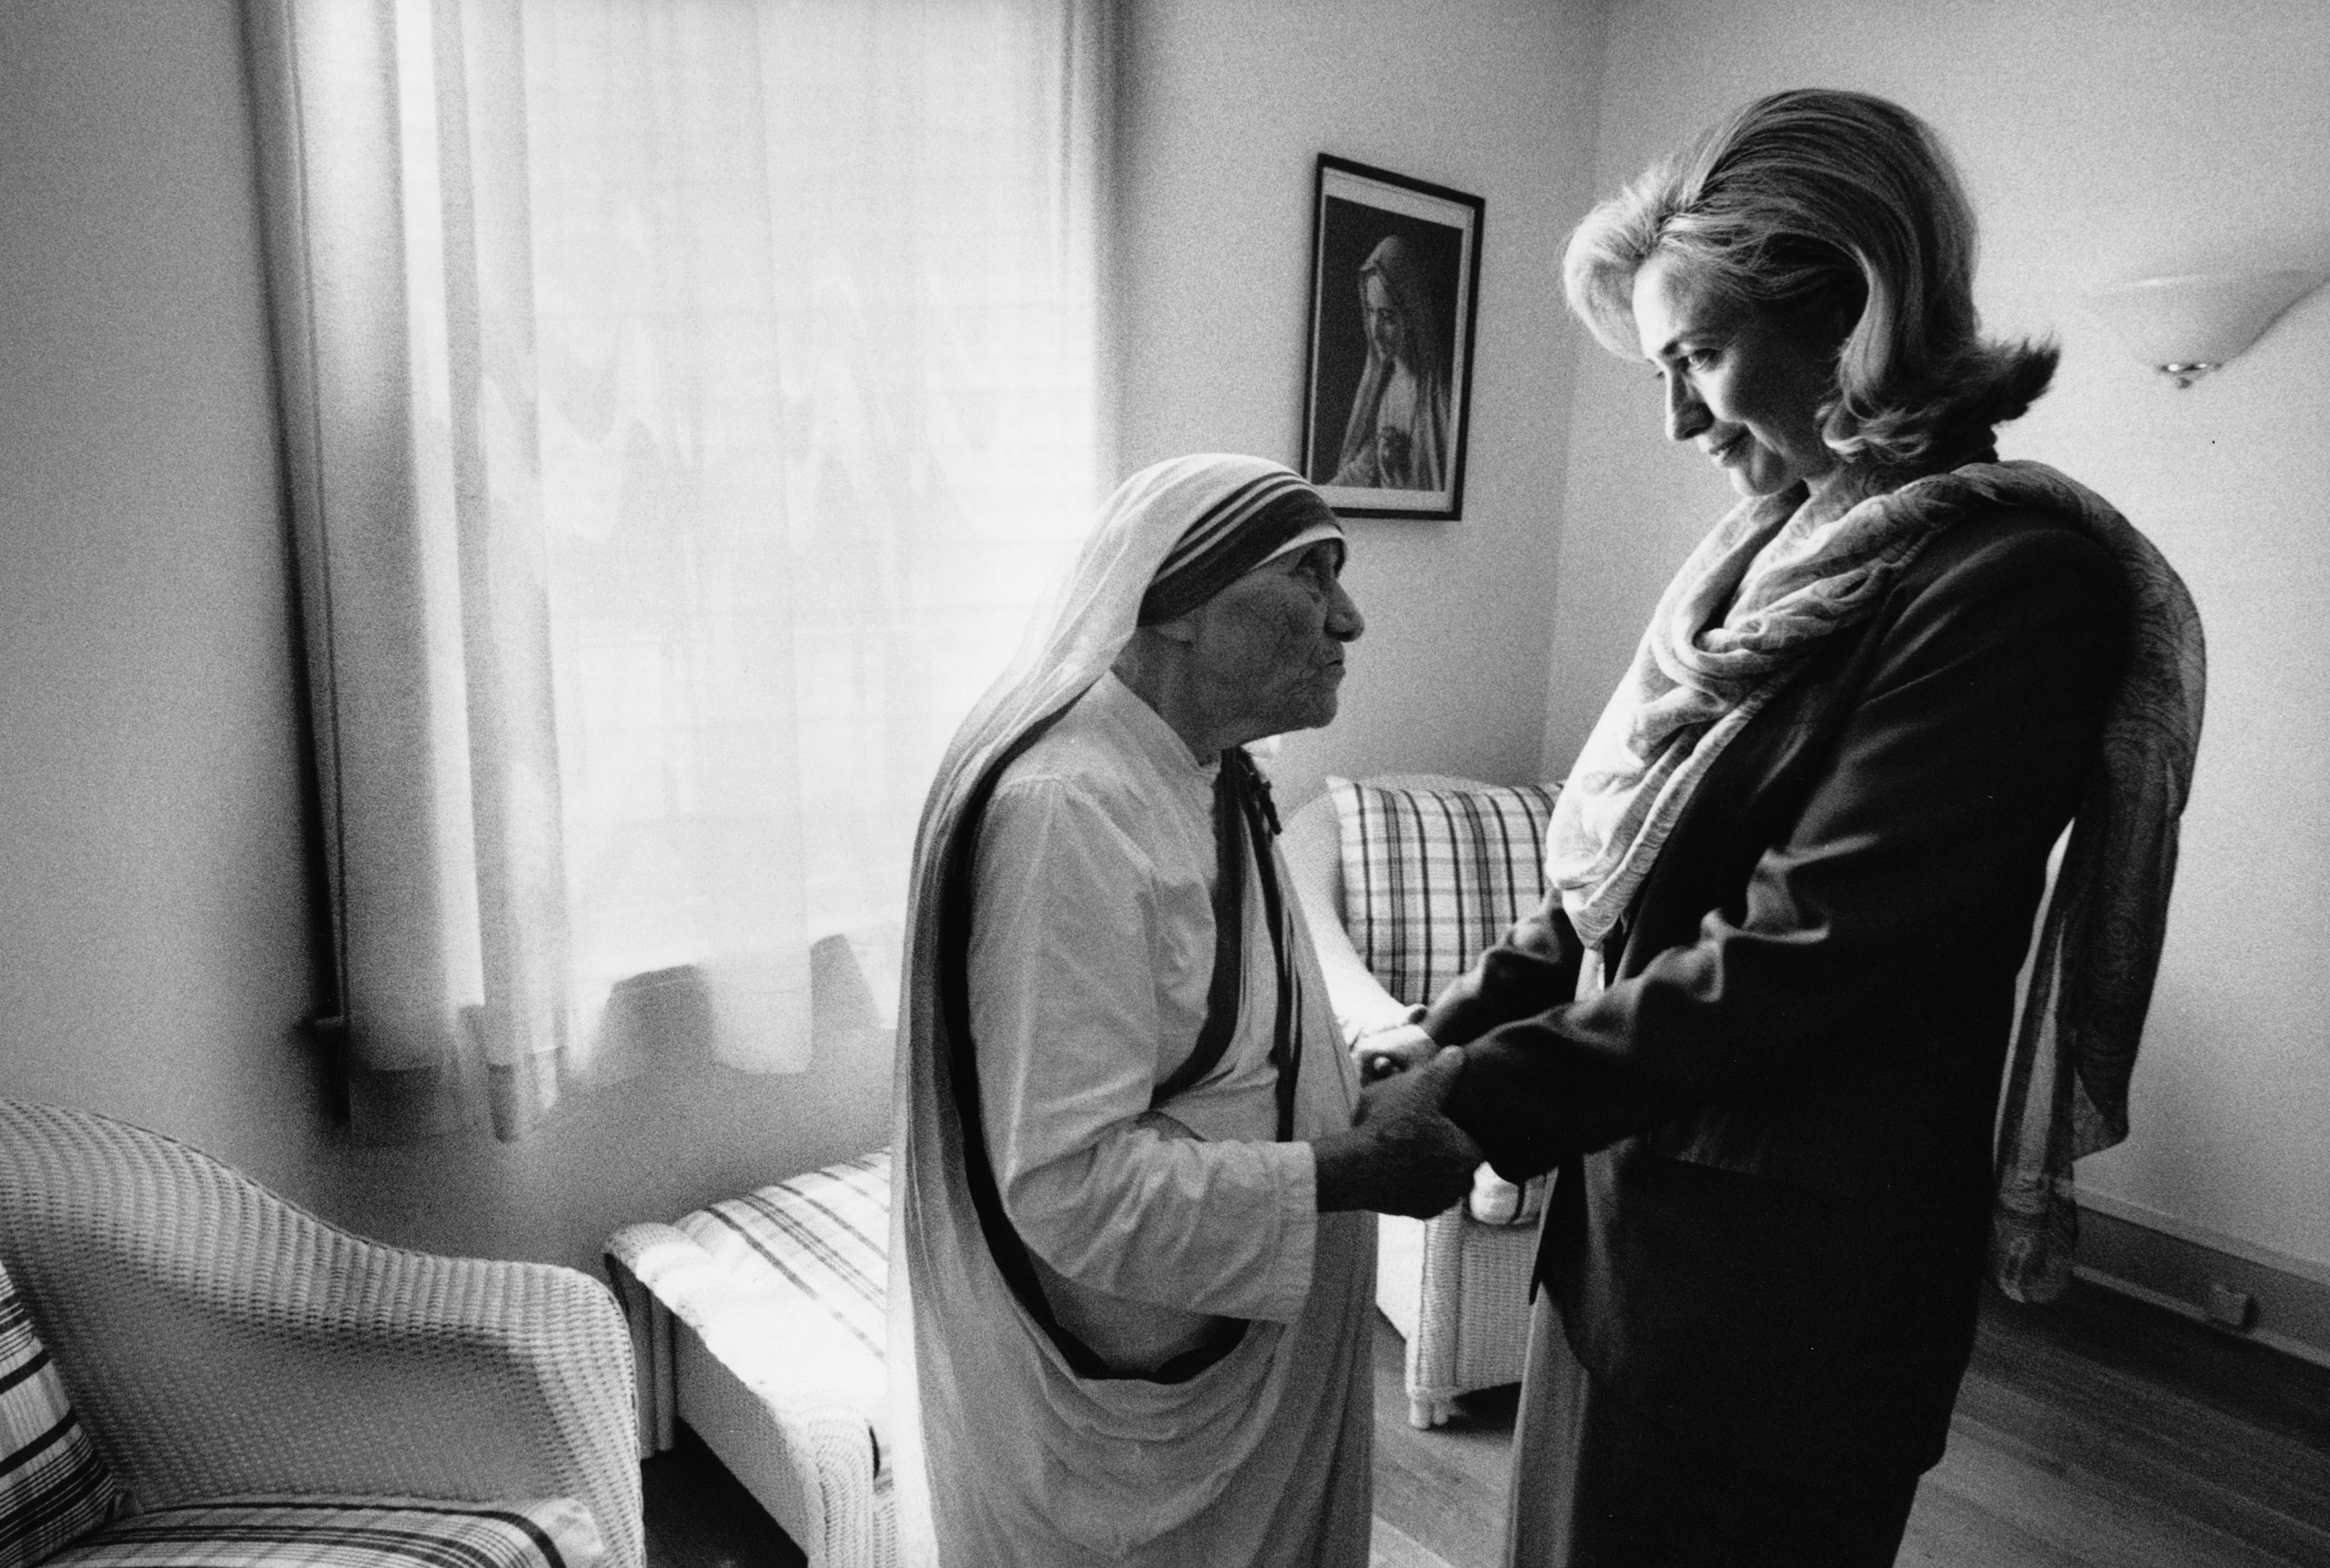 Hillary Rodham Clinton meets with Mother Teresa at the opening of the Mother Teresa Home for Infant Children in Washington, D.C., June 19, 1995.